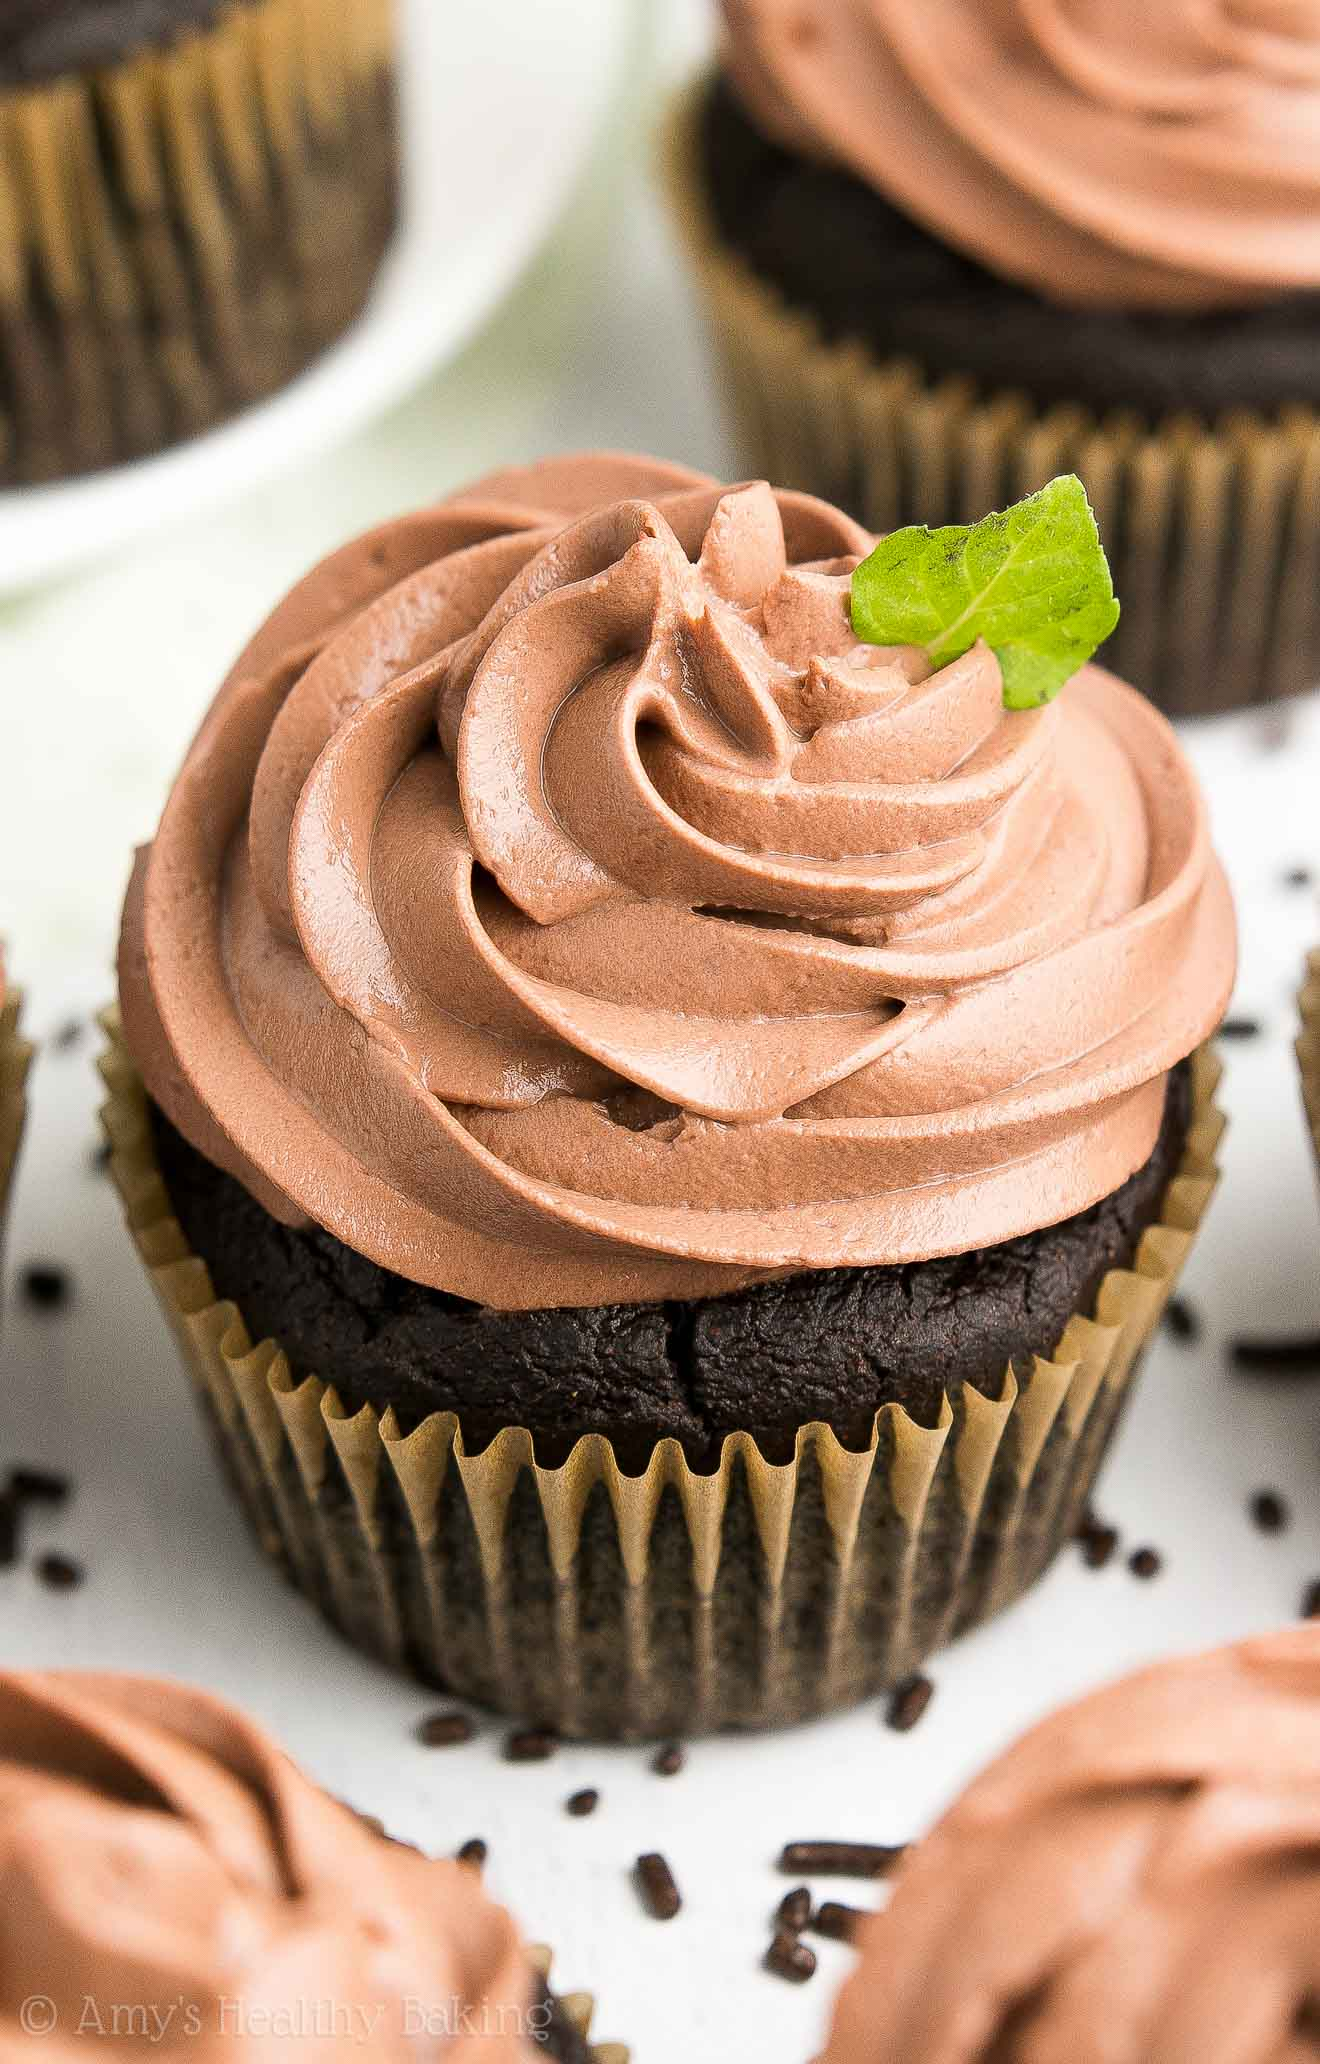 Chocolate Greek Yogurt Frosting piped on top of Healthy Mint Chocolate Cupcakes